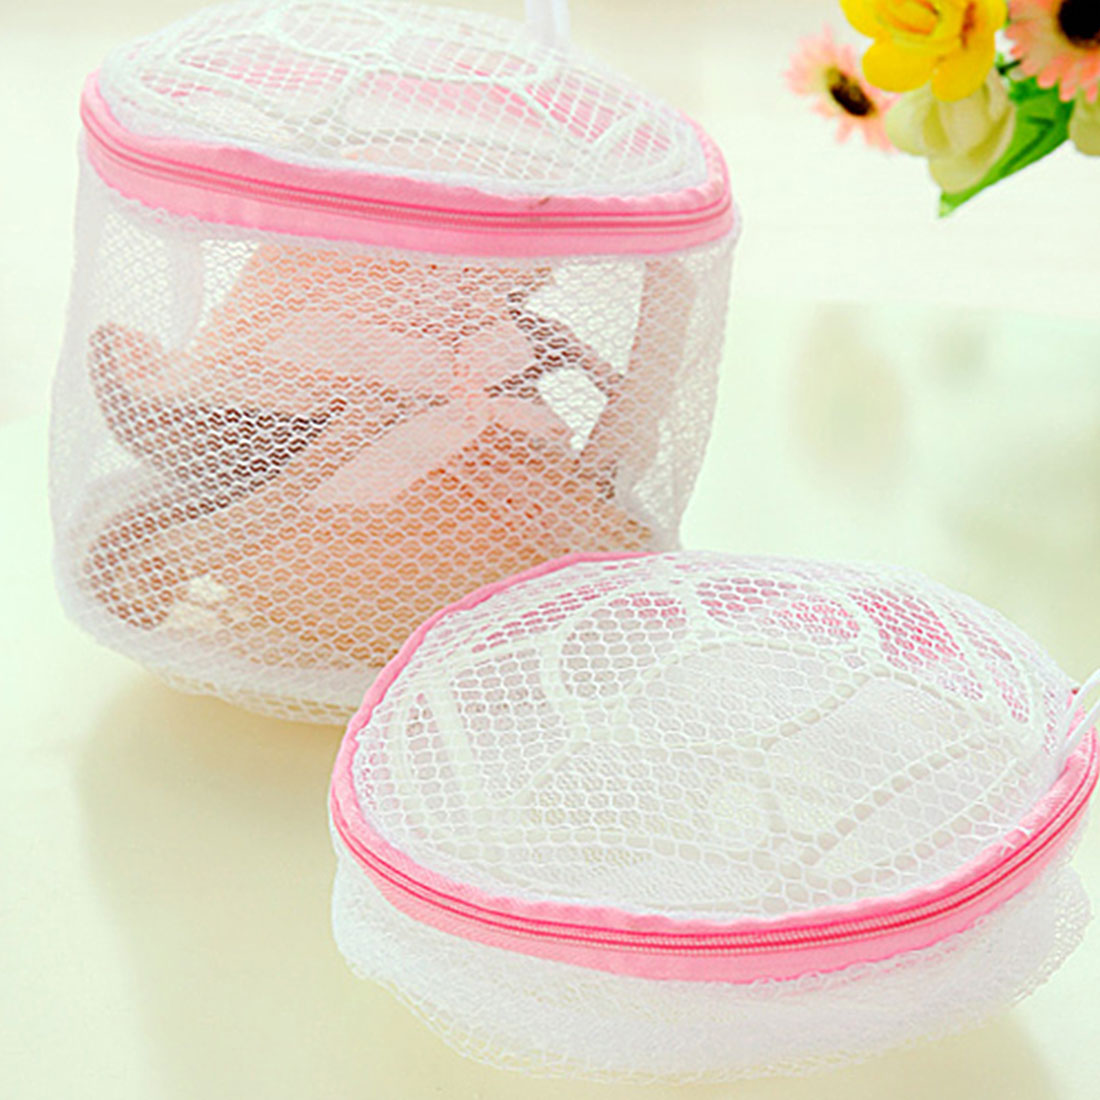 Practical Foldable Household Cleaning Tools Bra Lingerie Clothes Washing for Women